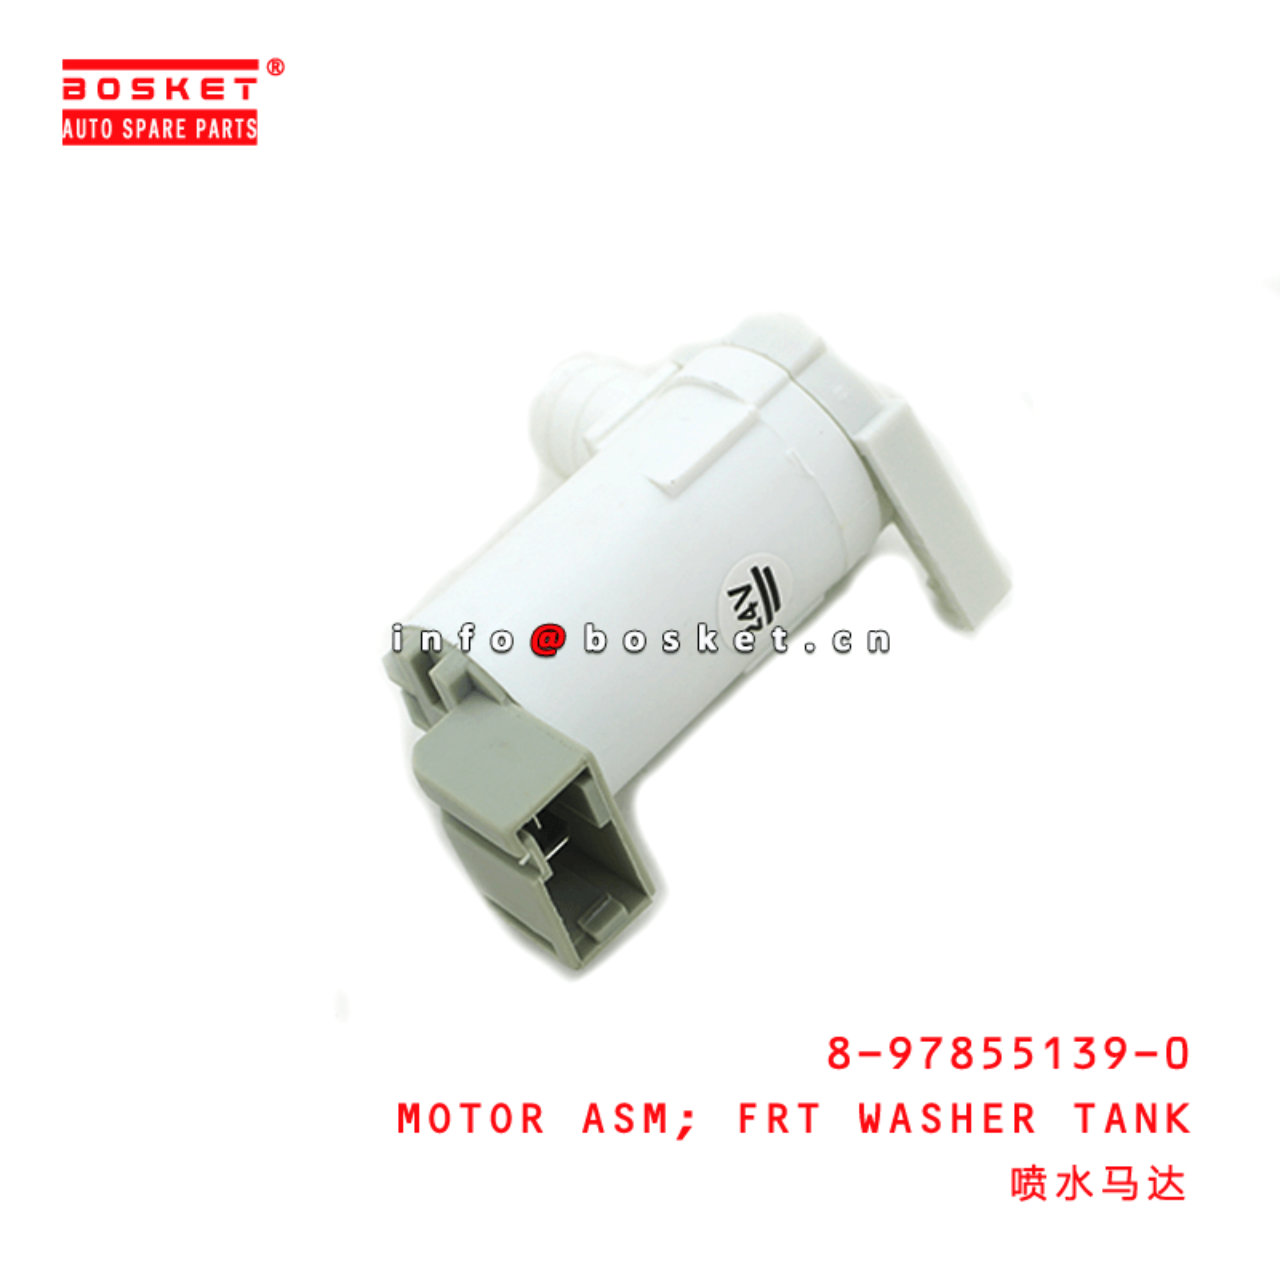 8-97855139-0 Front Washer Tank Motor Assembly 8978551390 Suitable for ISUZU 700P NPR75 NQR75 4HK1